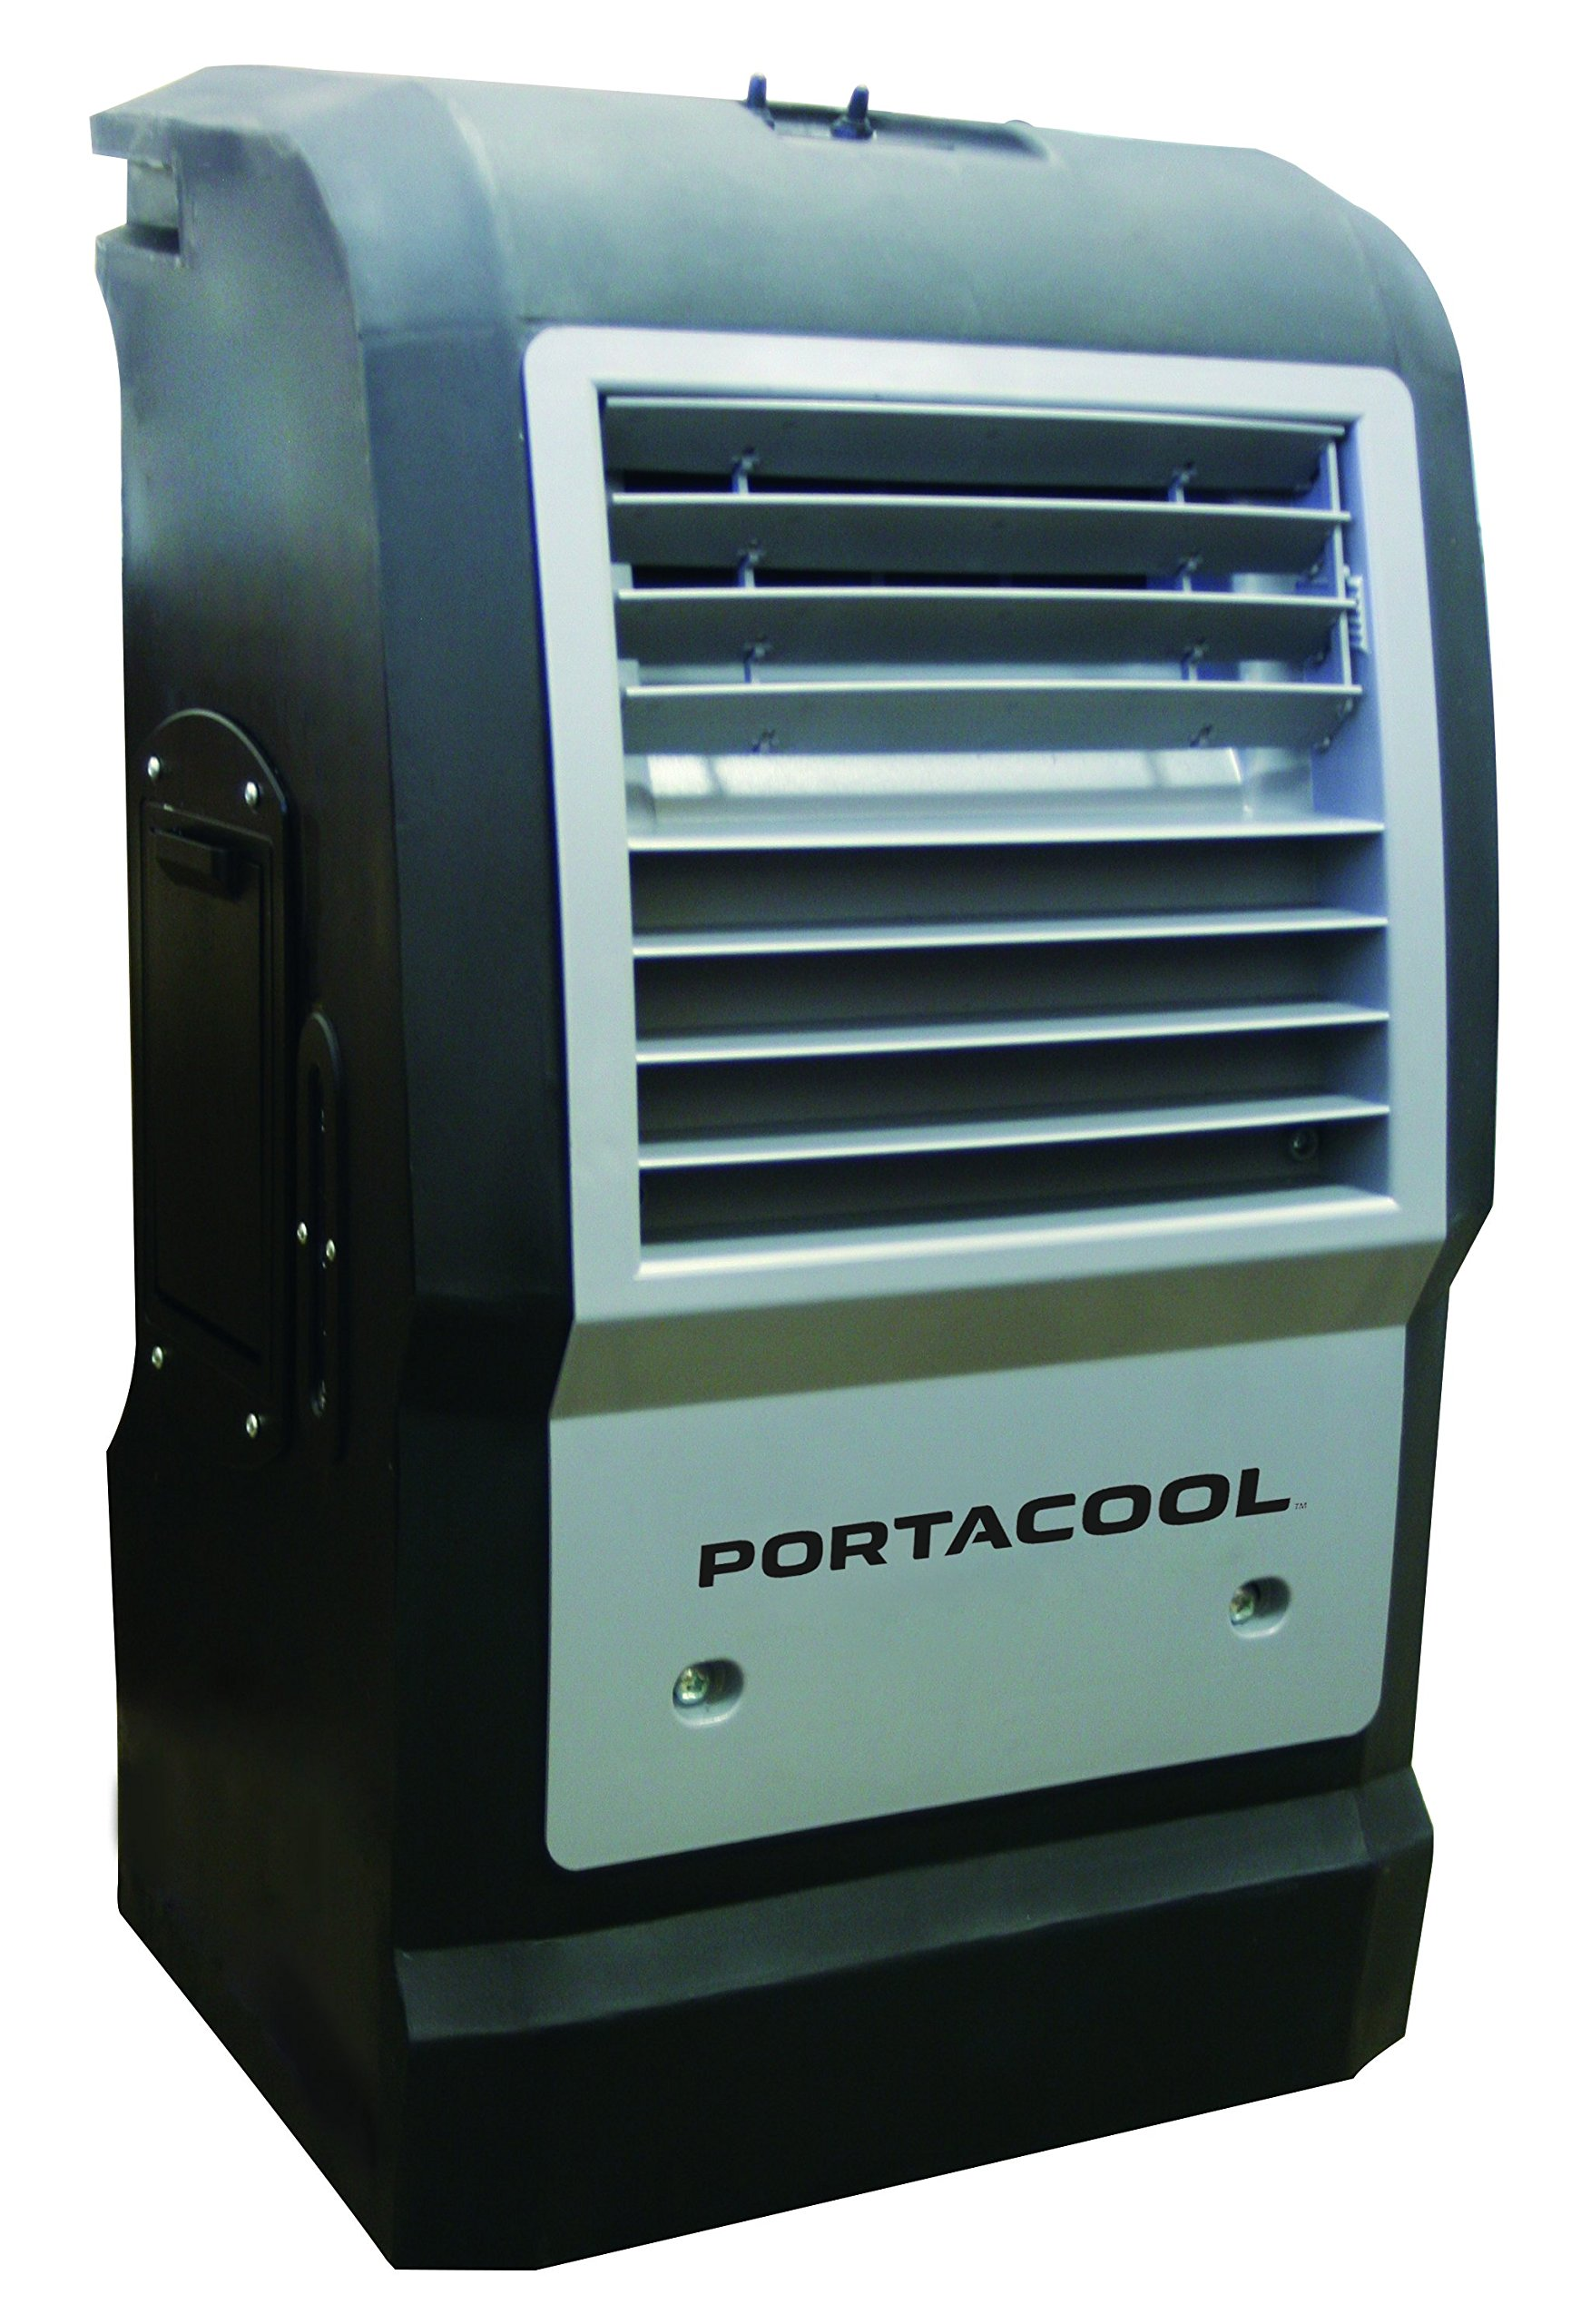 Portacool PACCYC06 Cyclone 1000 Portable Evaporative Cooler with 300 Square Foot Cooling Capacity